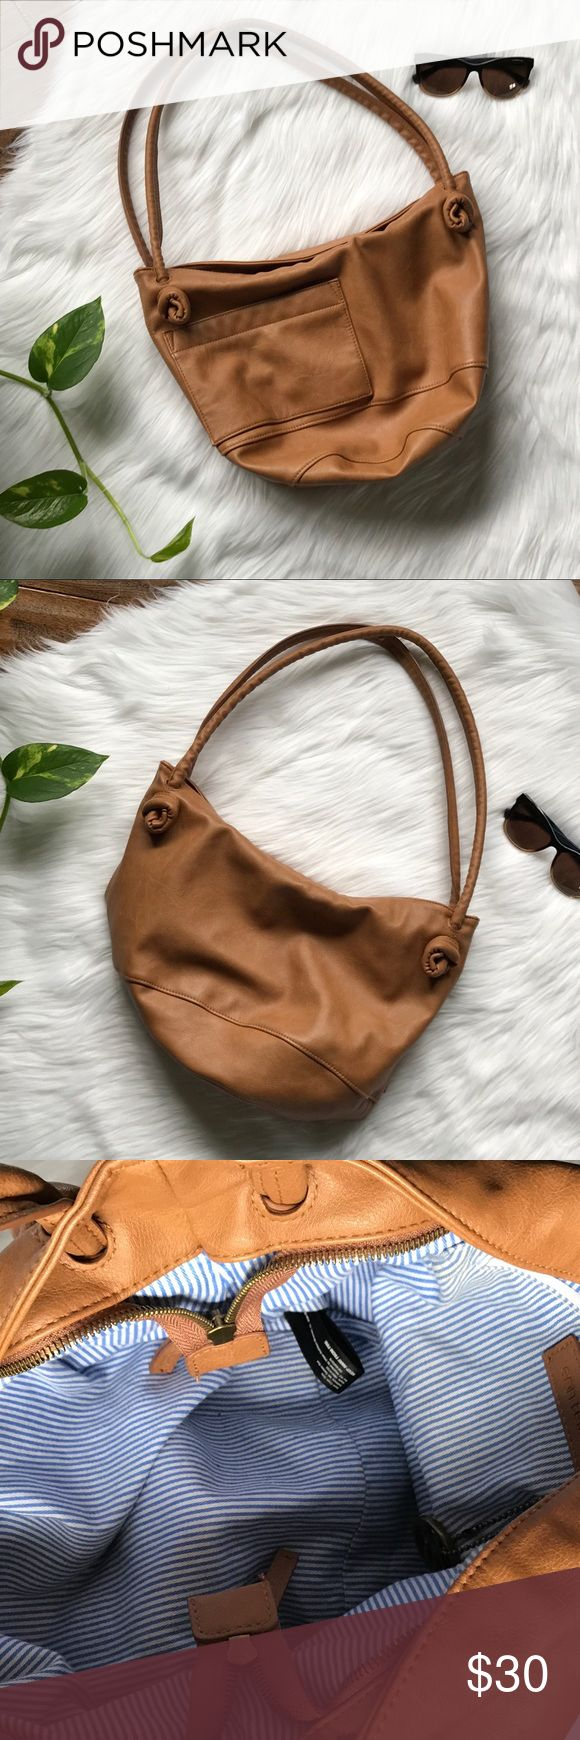 ✨✨URBAN OUTFITTERS Tan Faux Leather Shoulder Bag Lightly Used Tan Purse with Cloth Lining. Erin Templeton Purse Purchased From Urban Outfitters. Zipper Closure. Slightly signs of Use In Interior Lining Urban Outfitters Bags Shoulder Bags